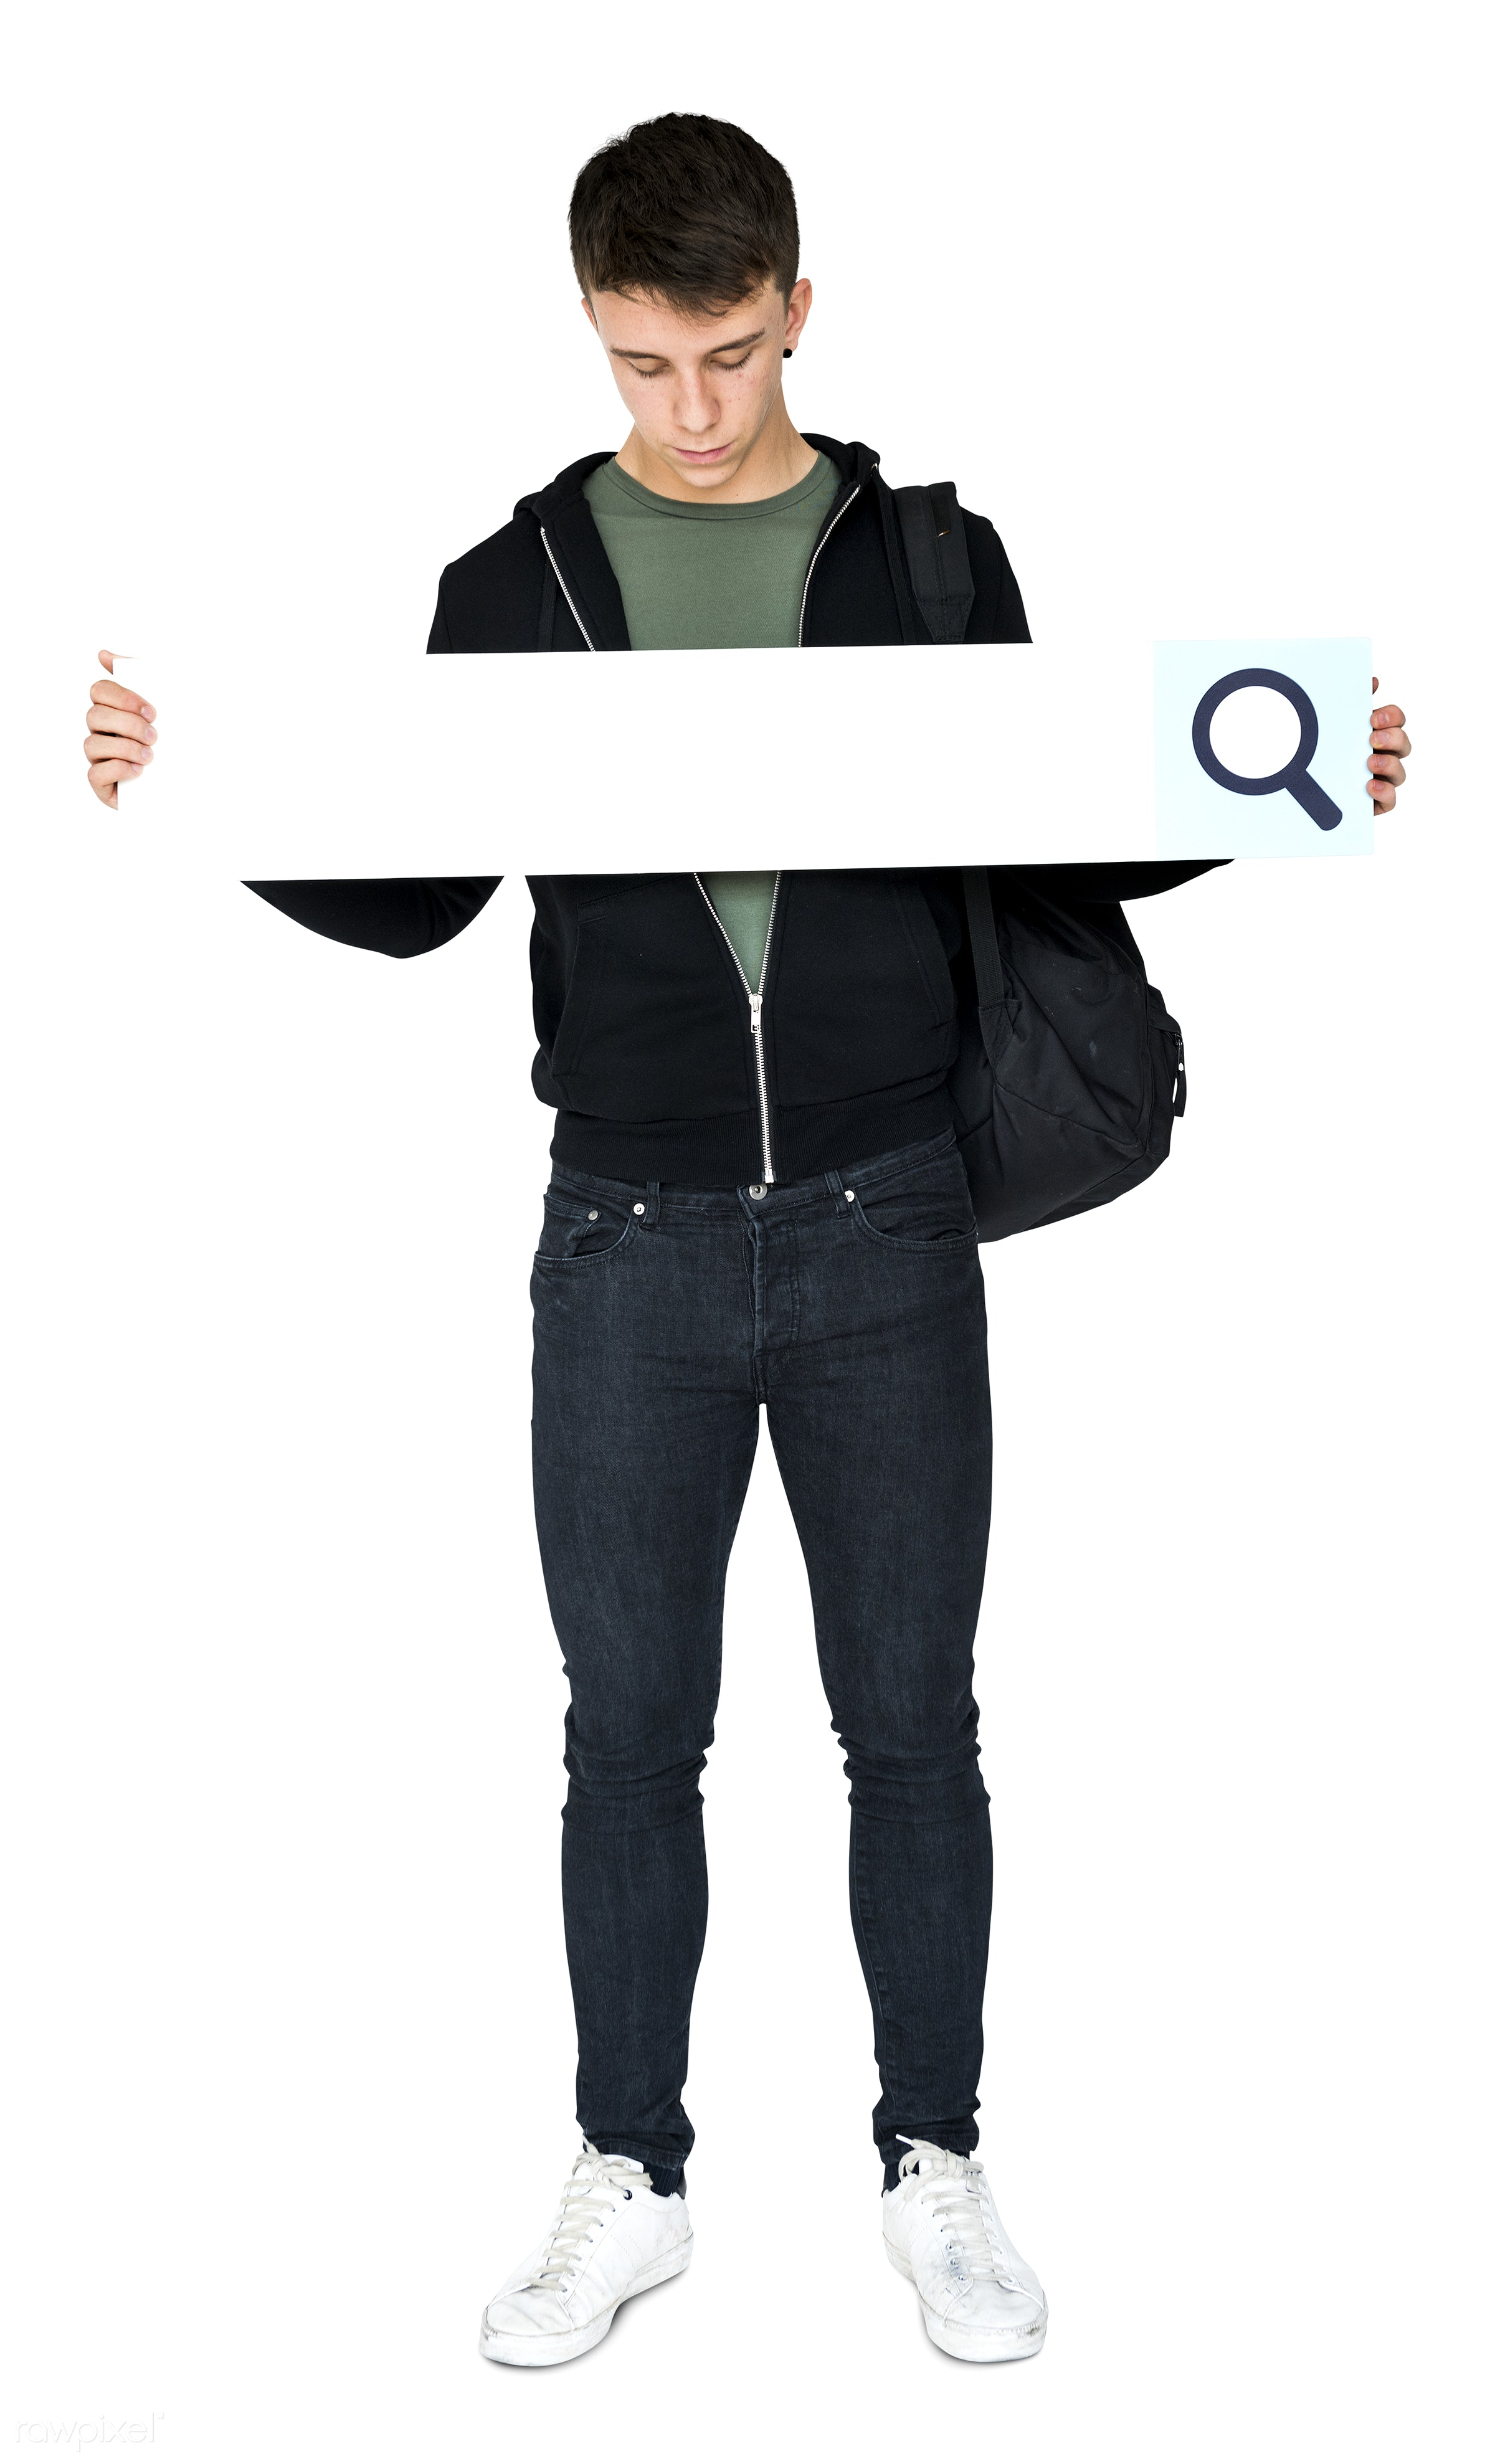 placard, adult, background, banner, blank, browsing, casual, copy space, guy, holding, isolated, isolated on white,...